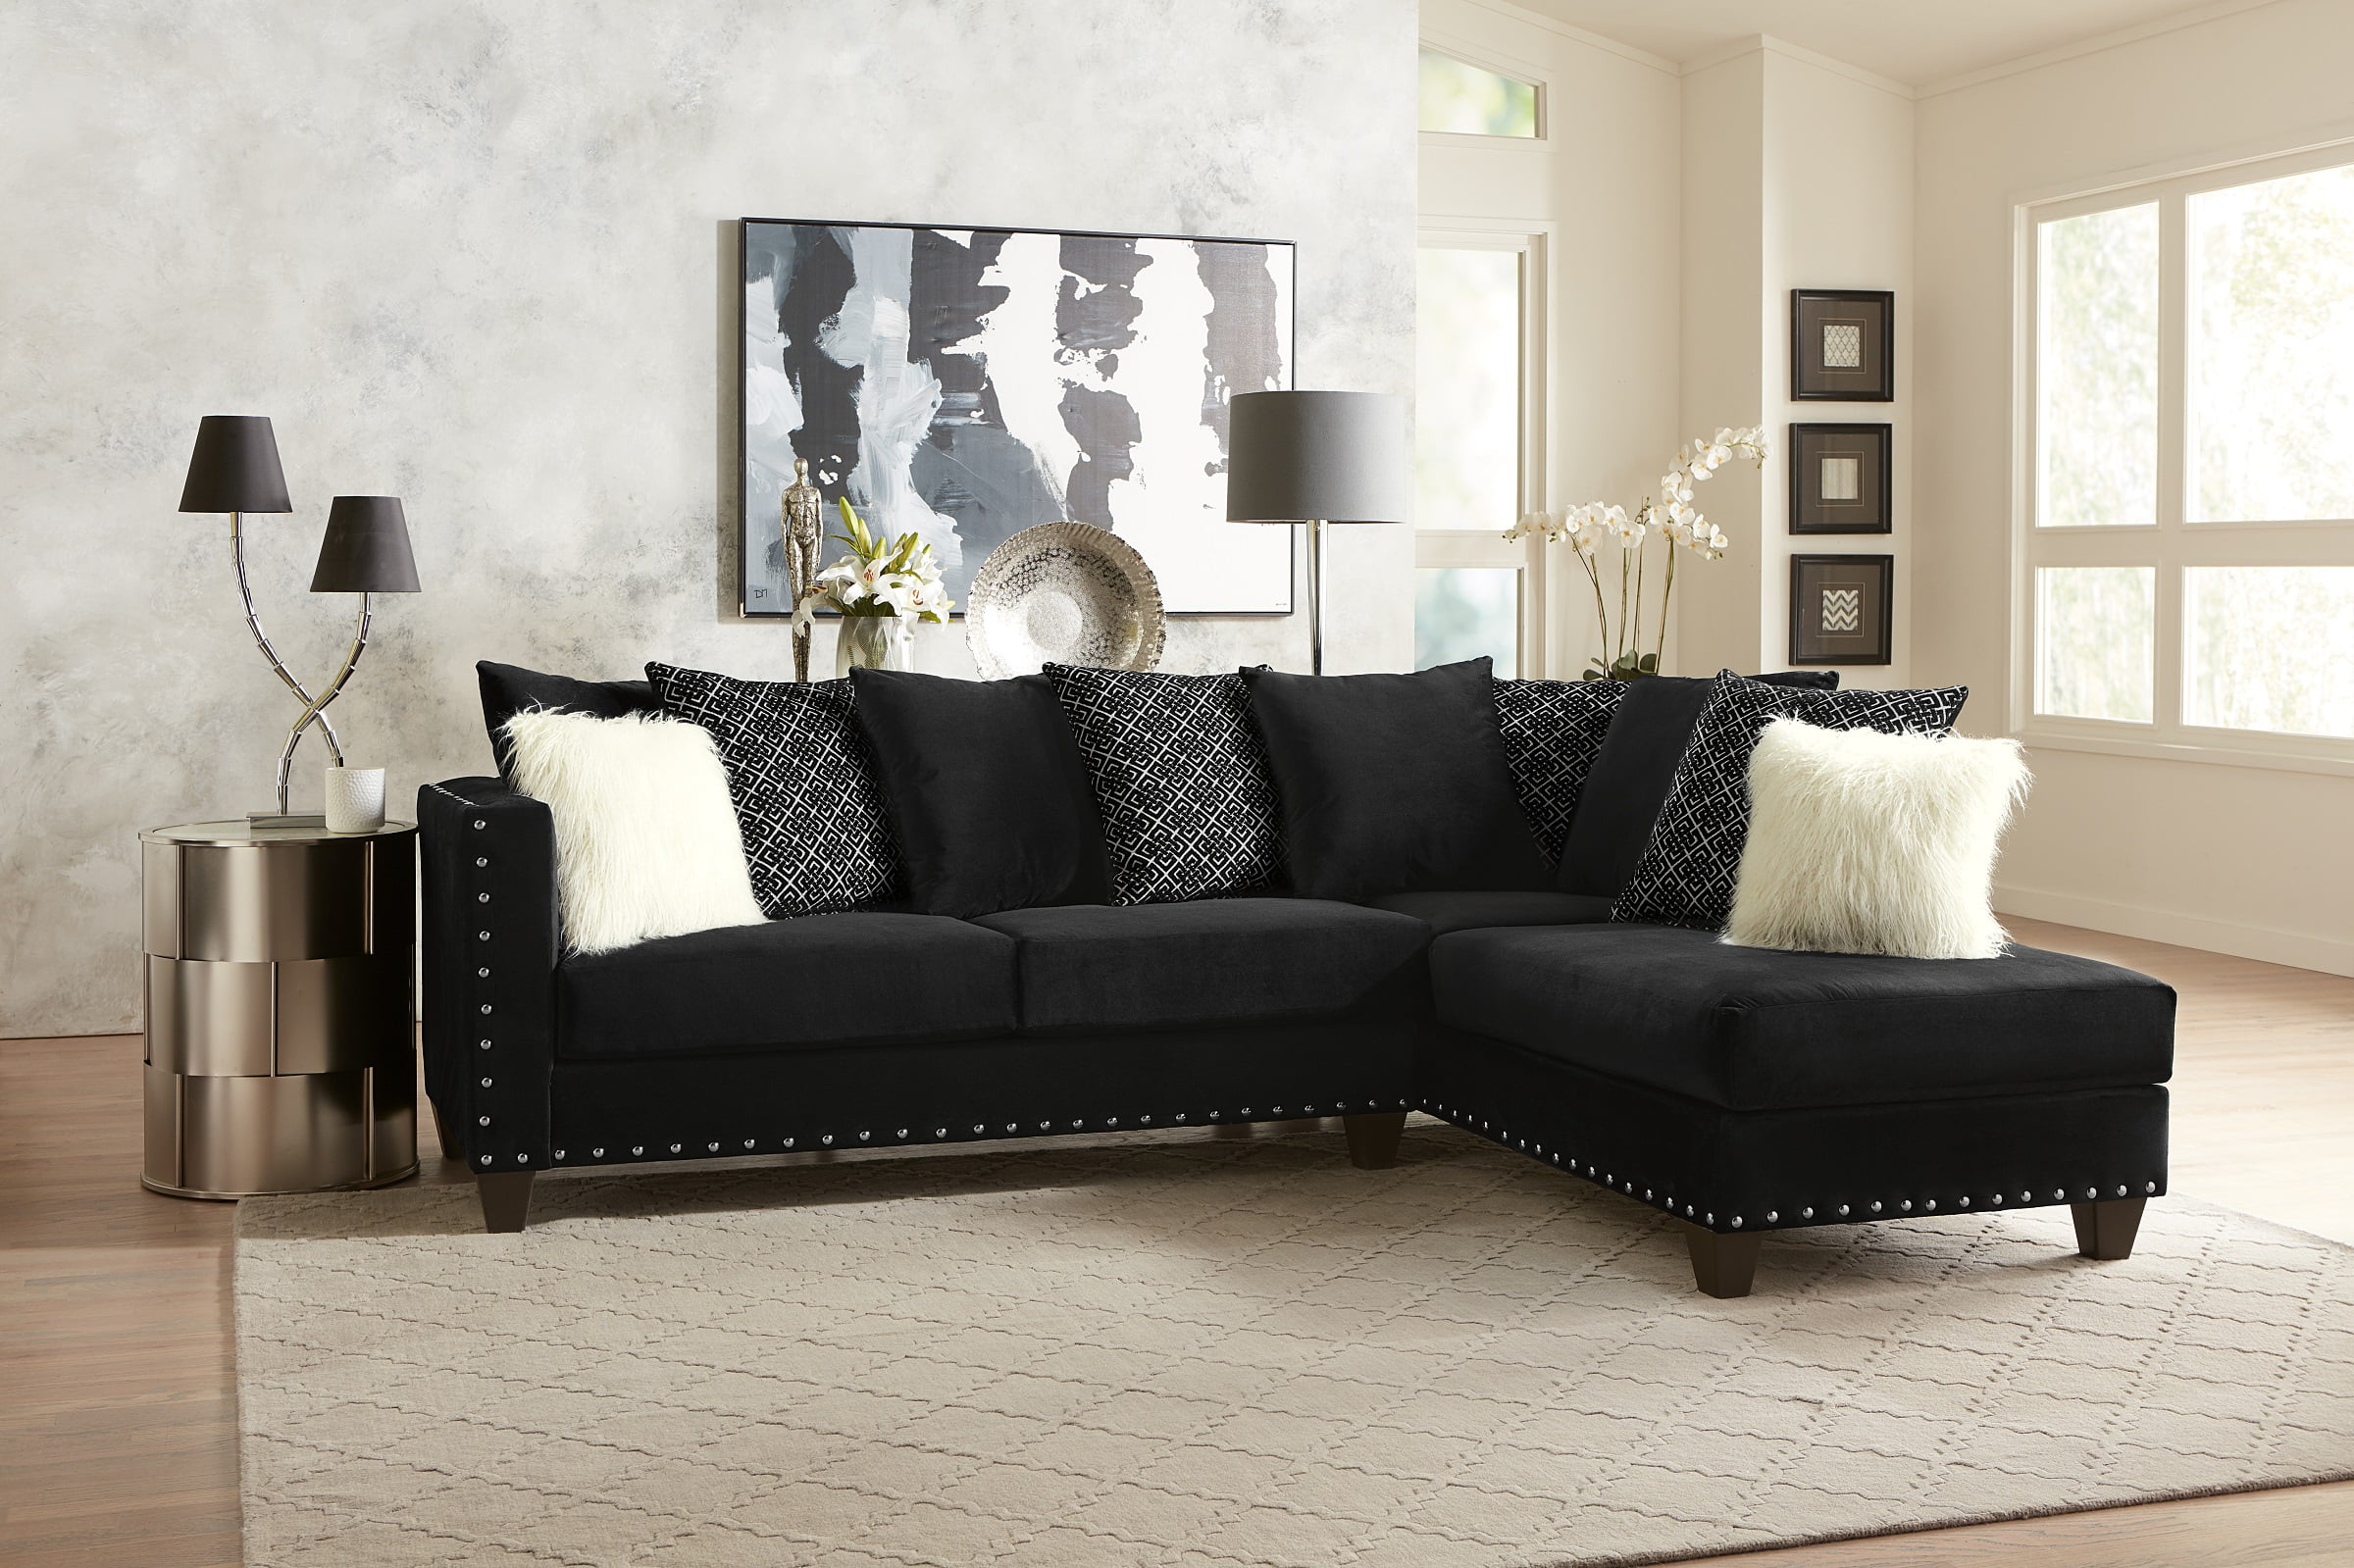 Living Room Modern Classic Black Fabric Sectional Sofa 2pc Set Cushion  Comfort Couch Sofa Chaise